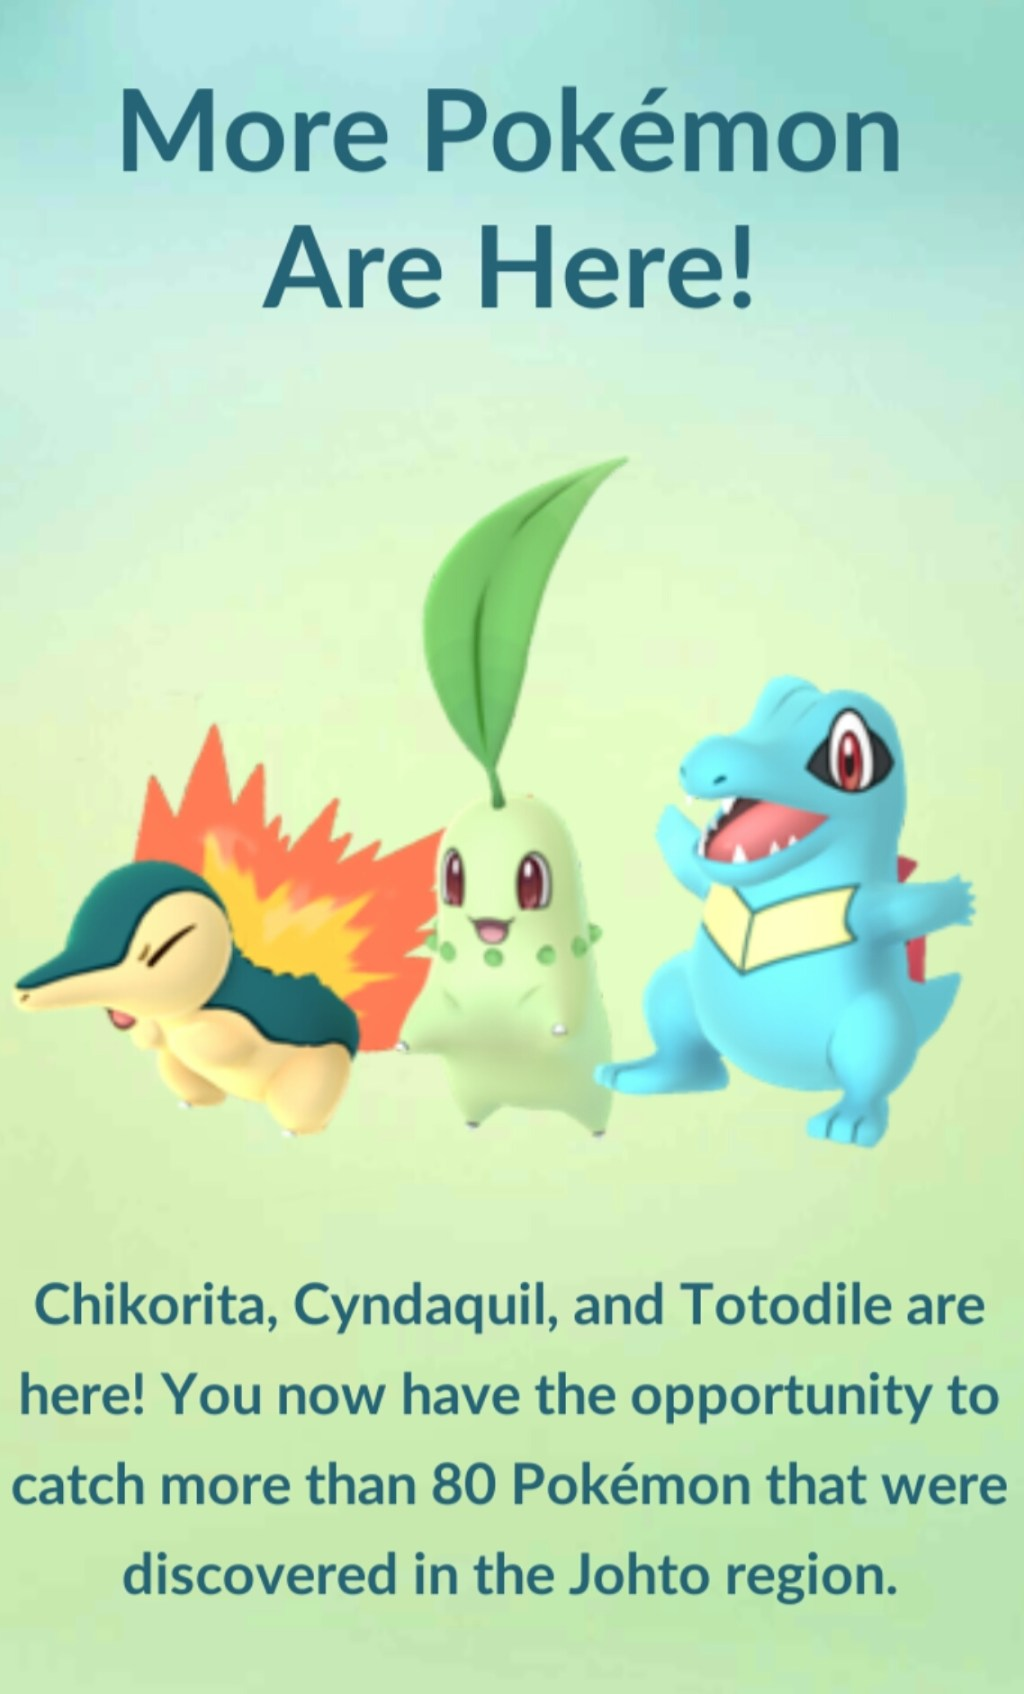 Every New Pokemon Added To The Johto Pokemon Go Update |